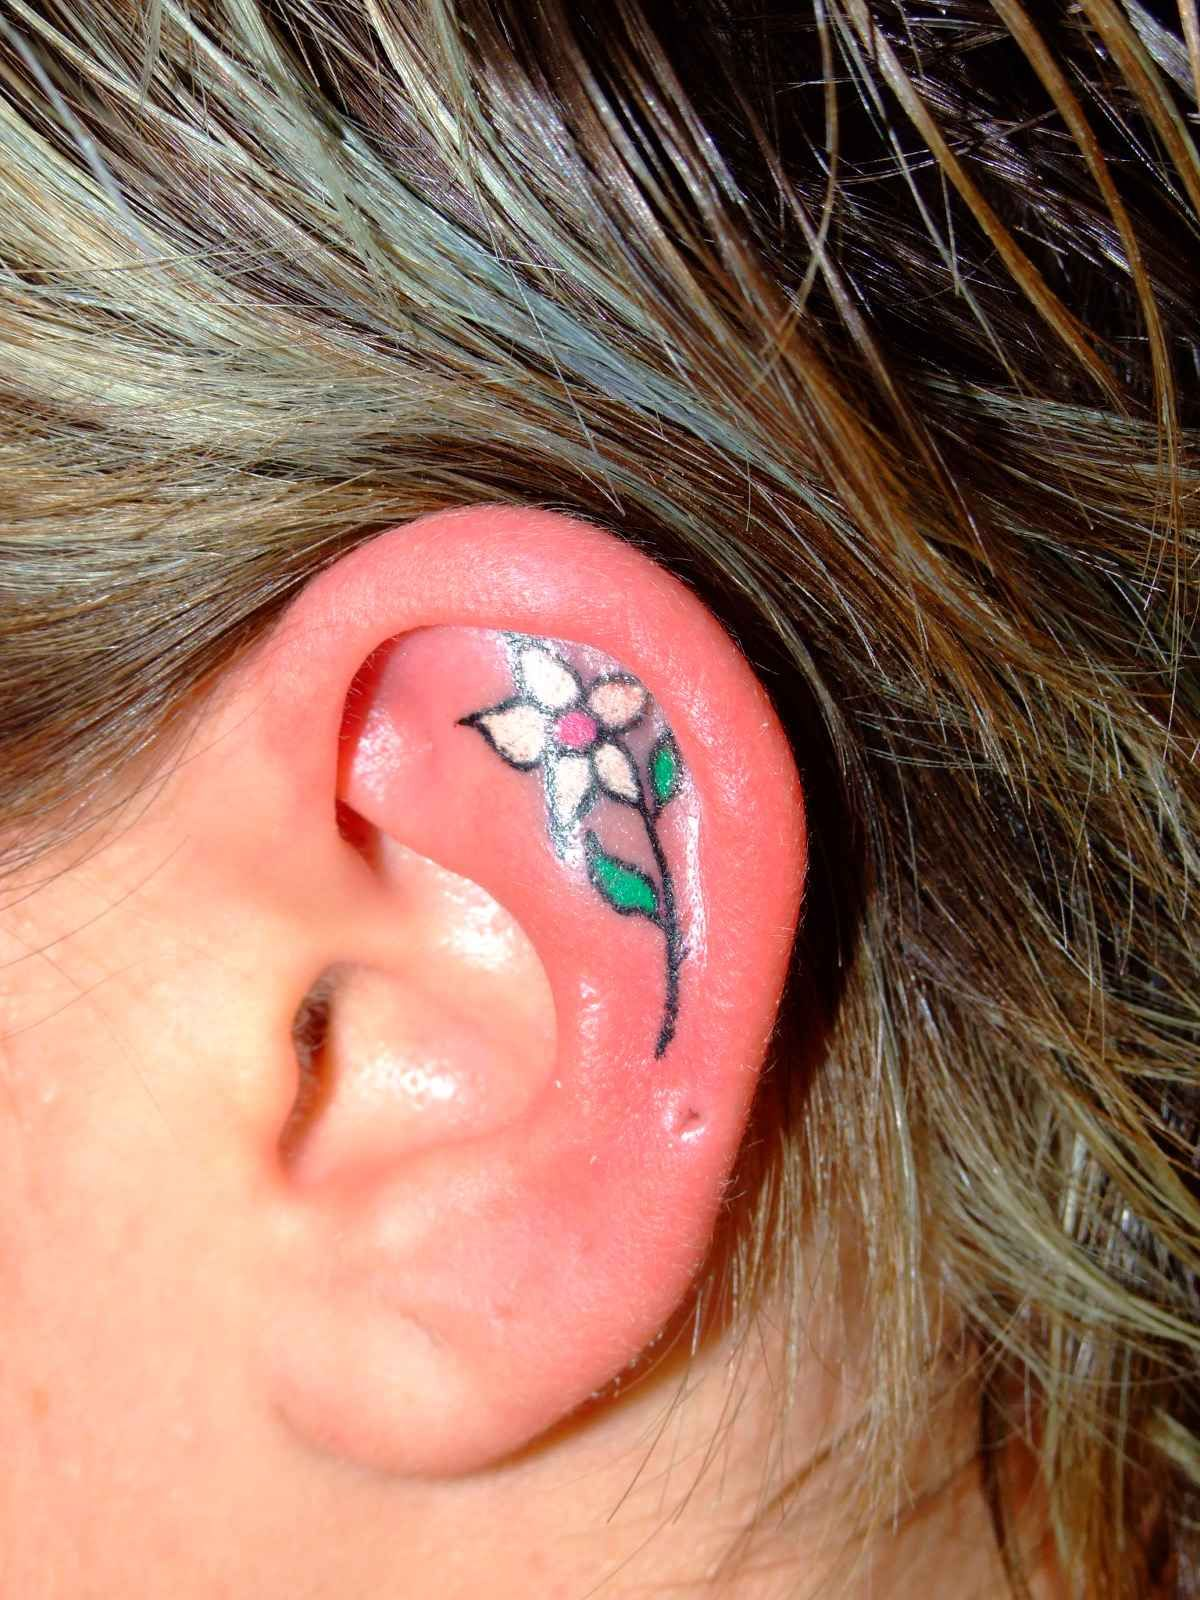 Images for lotus flower behind ear tattoo tattoo ideas images for lotus flower behind ear tattoo izmirmasajfo